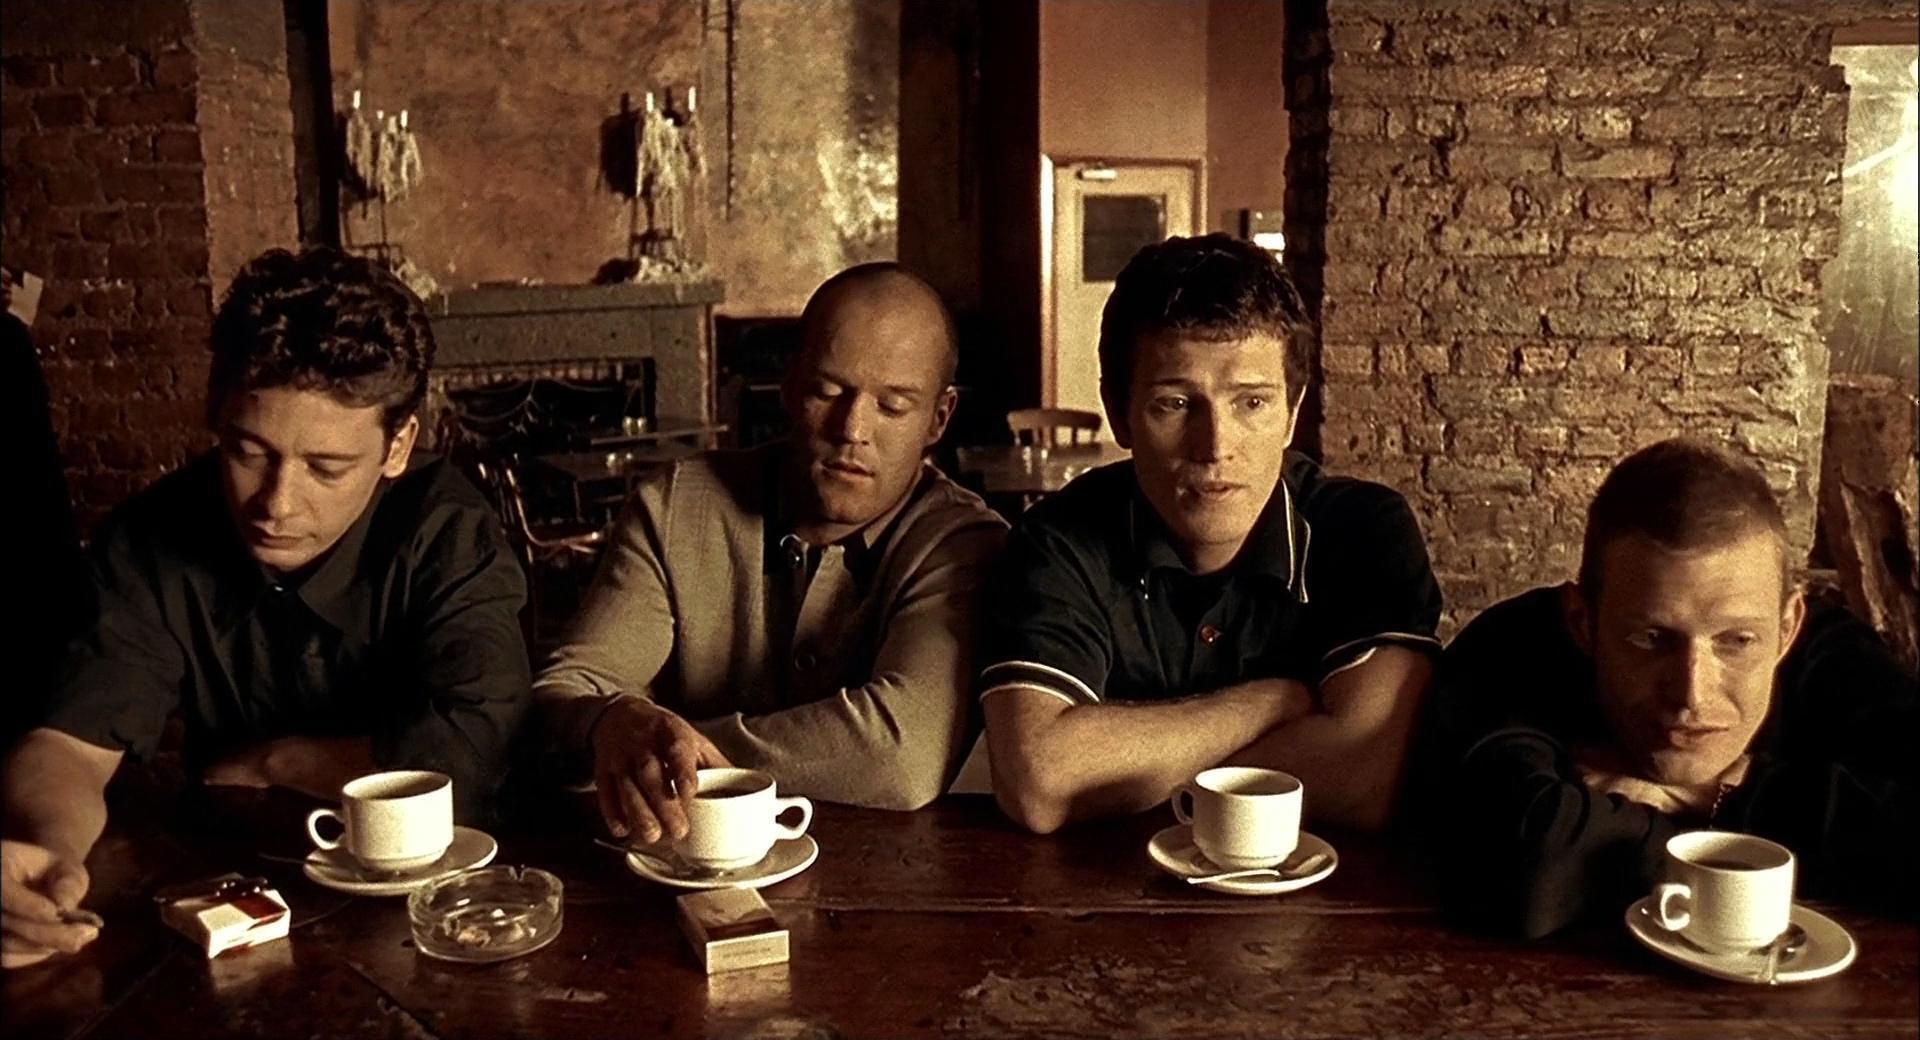 Lock, Stock, and Two Smoking Barrels - 1998